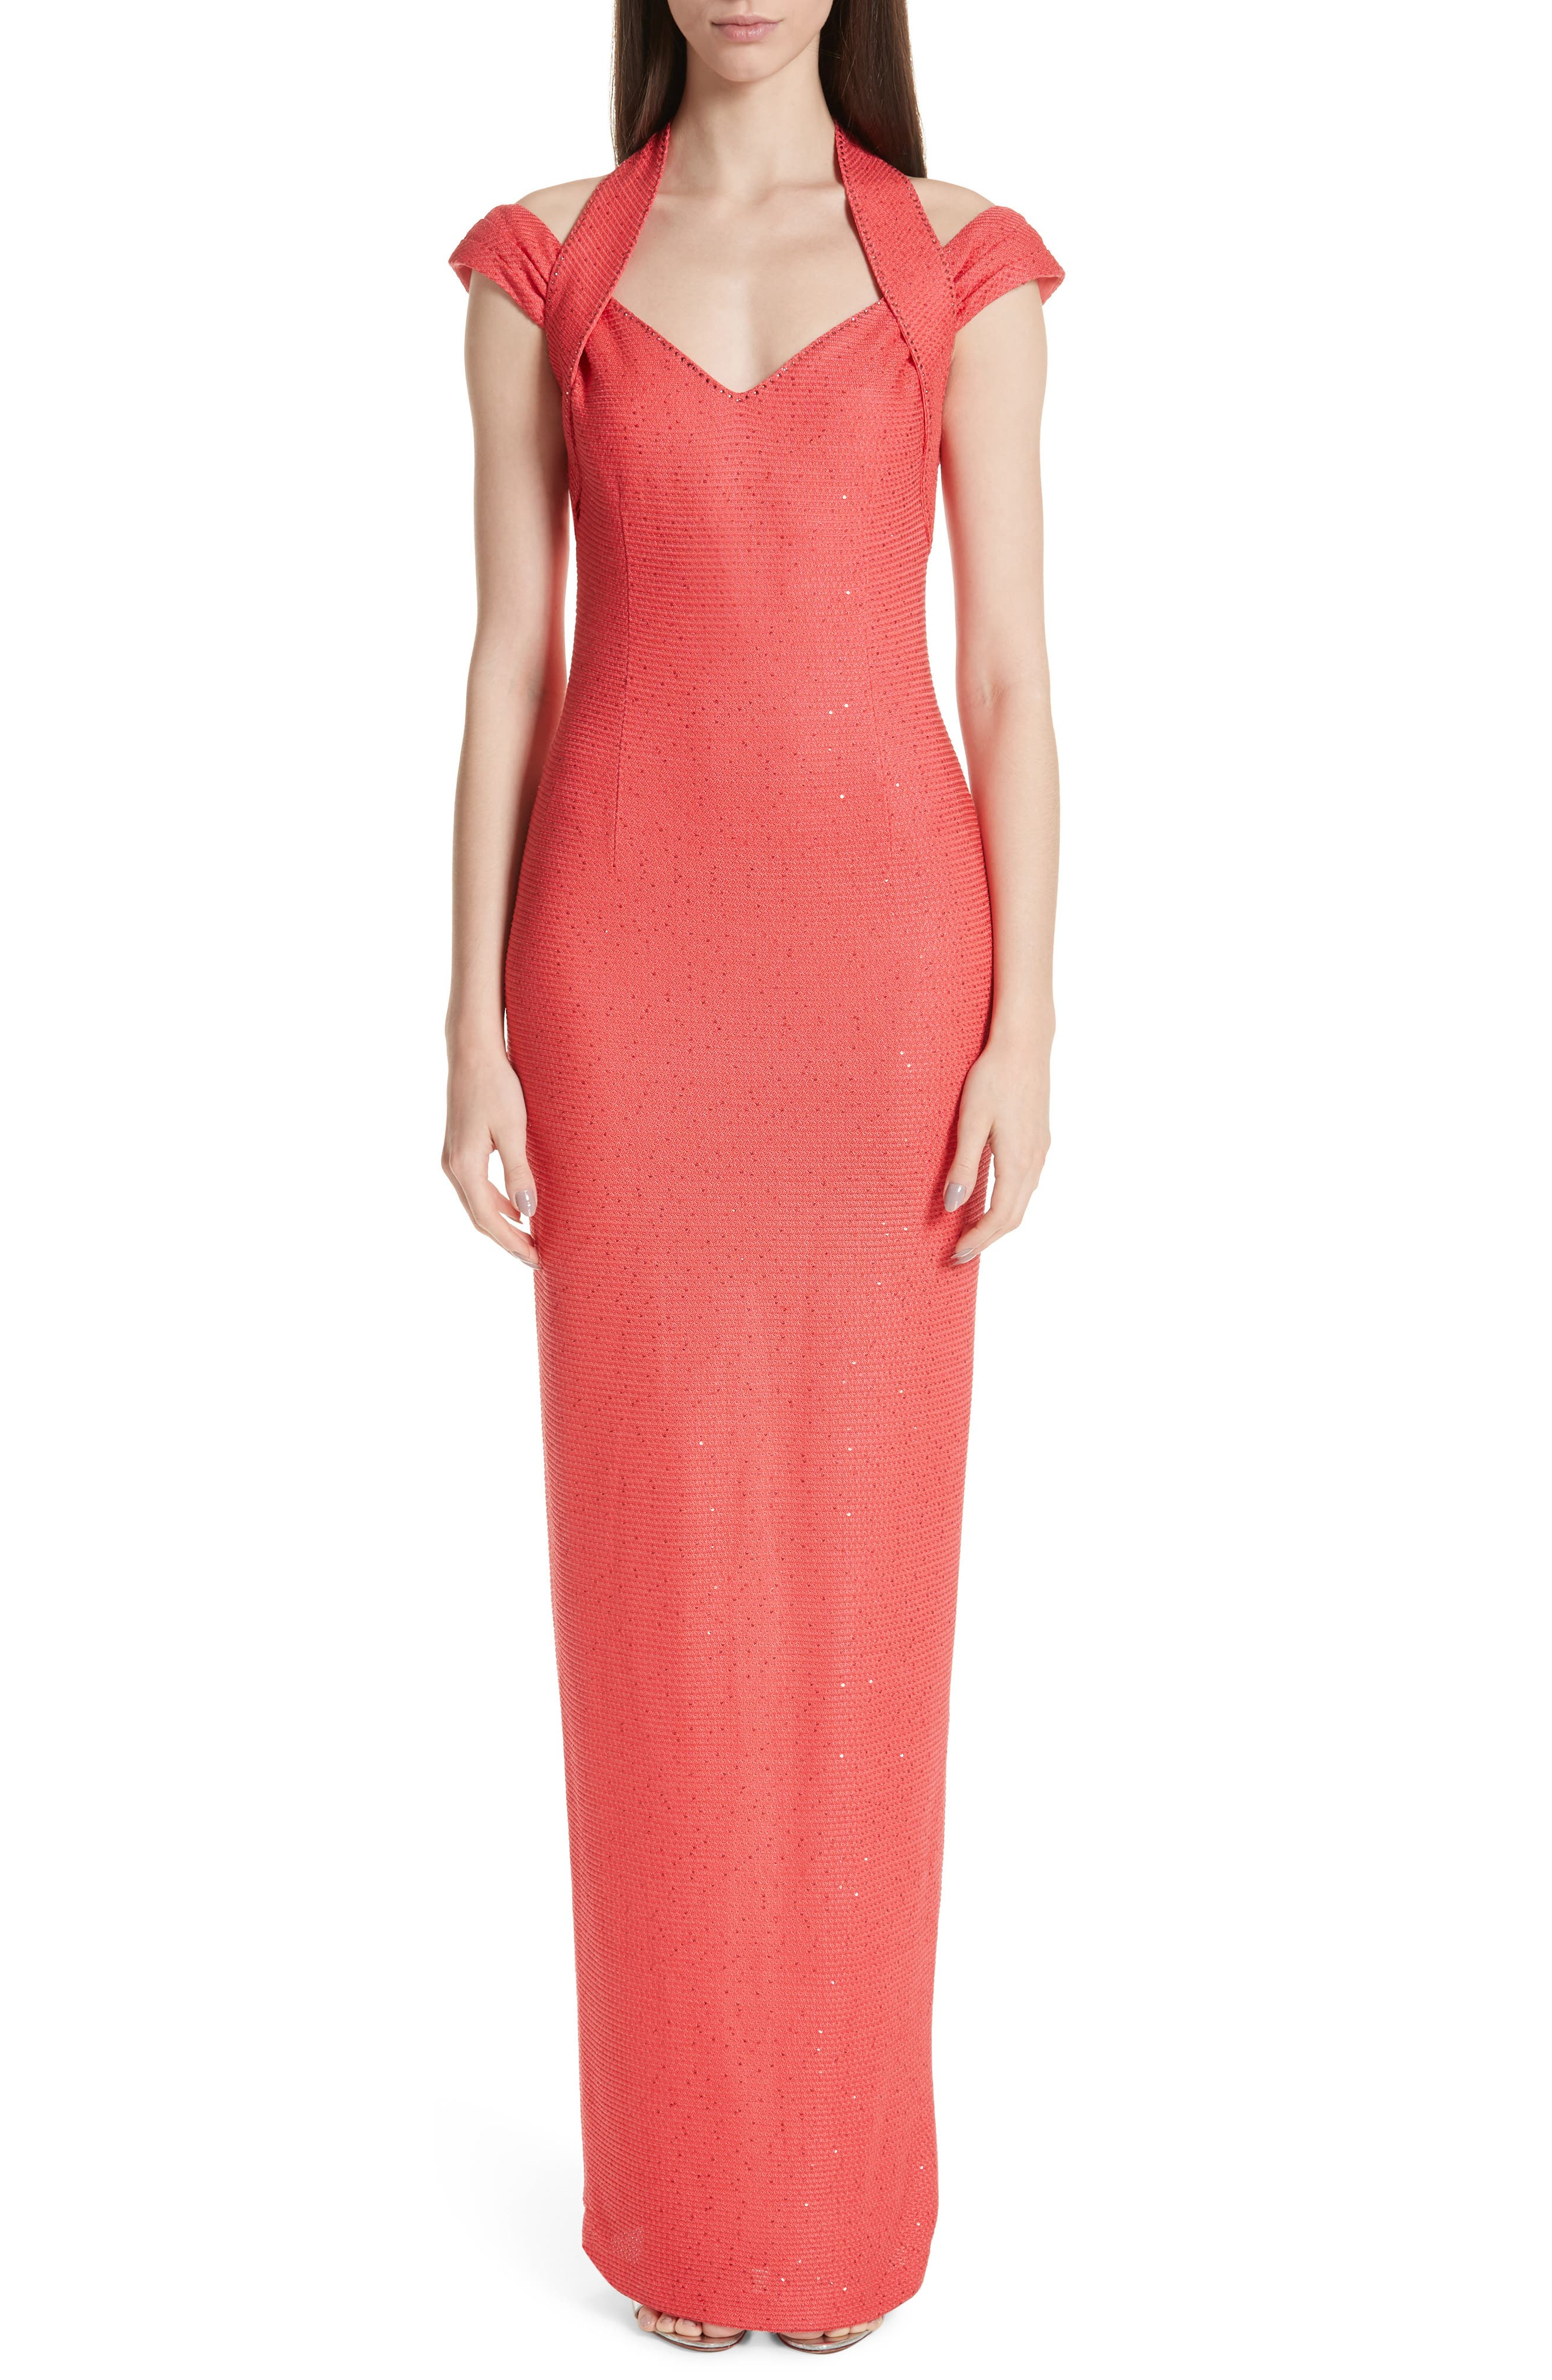 St. John Collection Links Sequin Knit Halter Gown, Pink